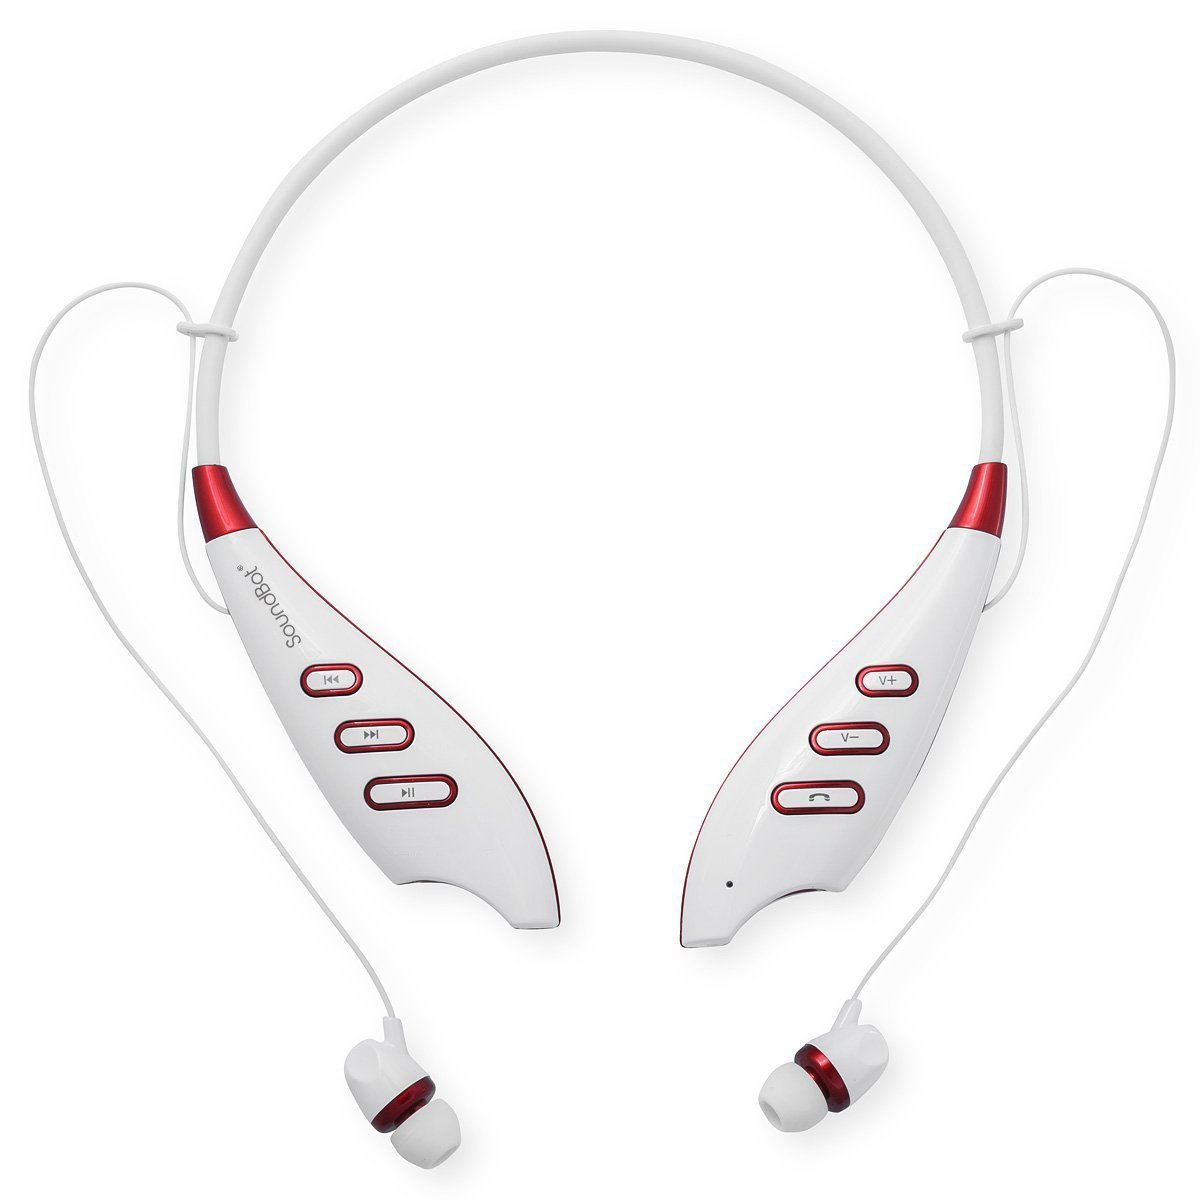 headphones that will vibrate to notify you e list reviews. Black Bedroom Furniture Sets. Home Design Ideas